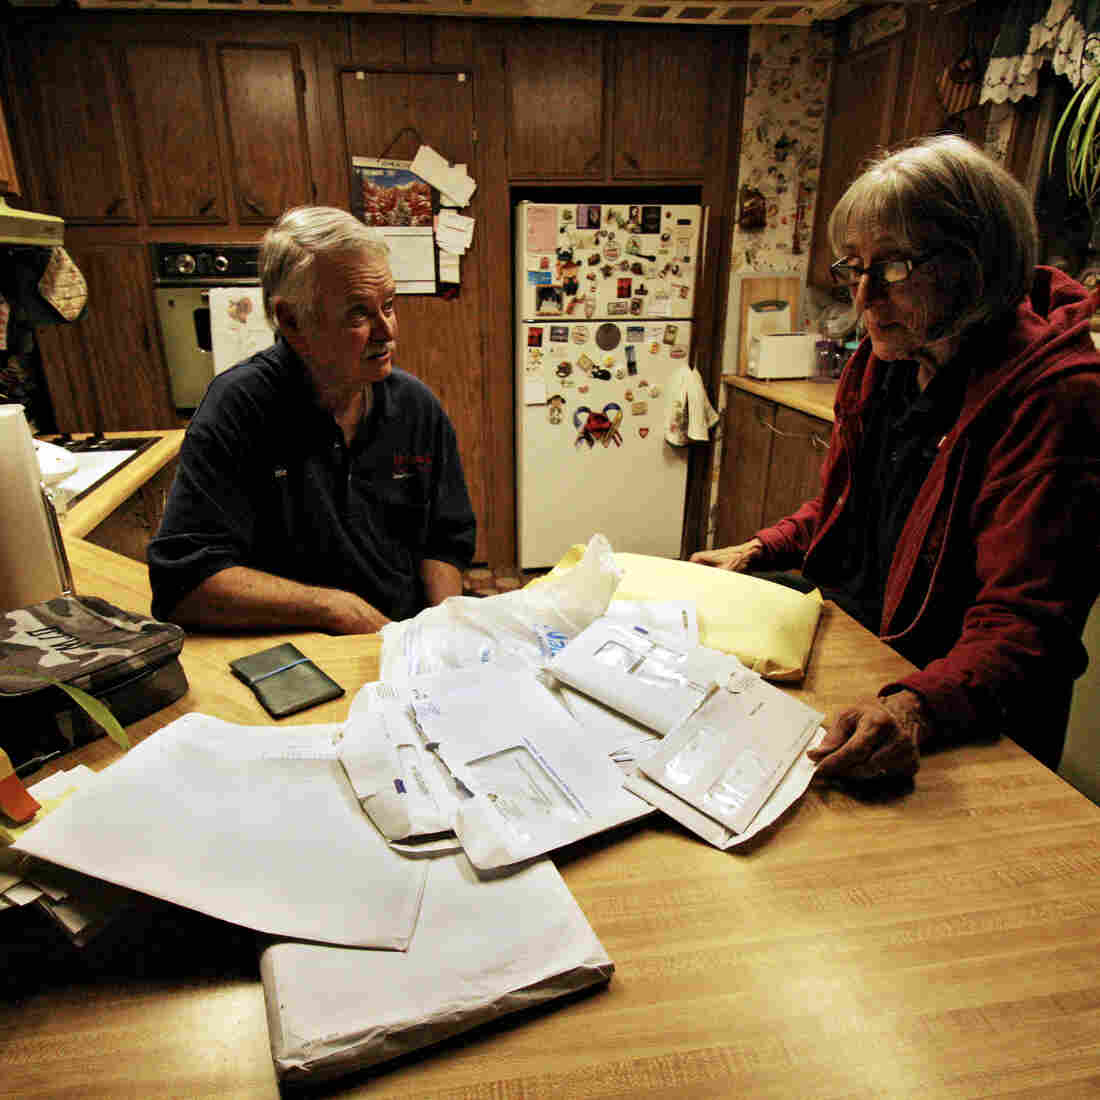 Dennie and Kathy Wright sift through a stack of medical bills at their home in Indian Valley, Calif.